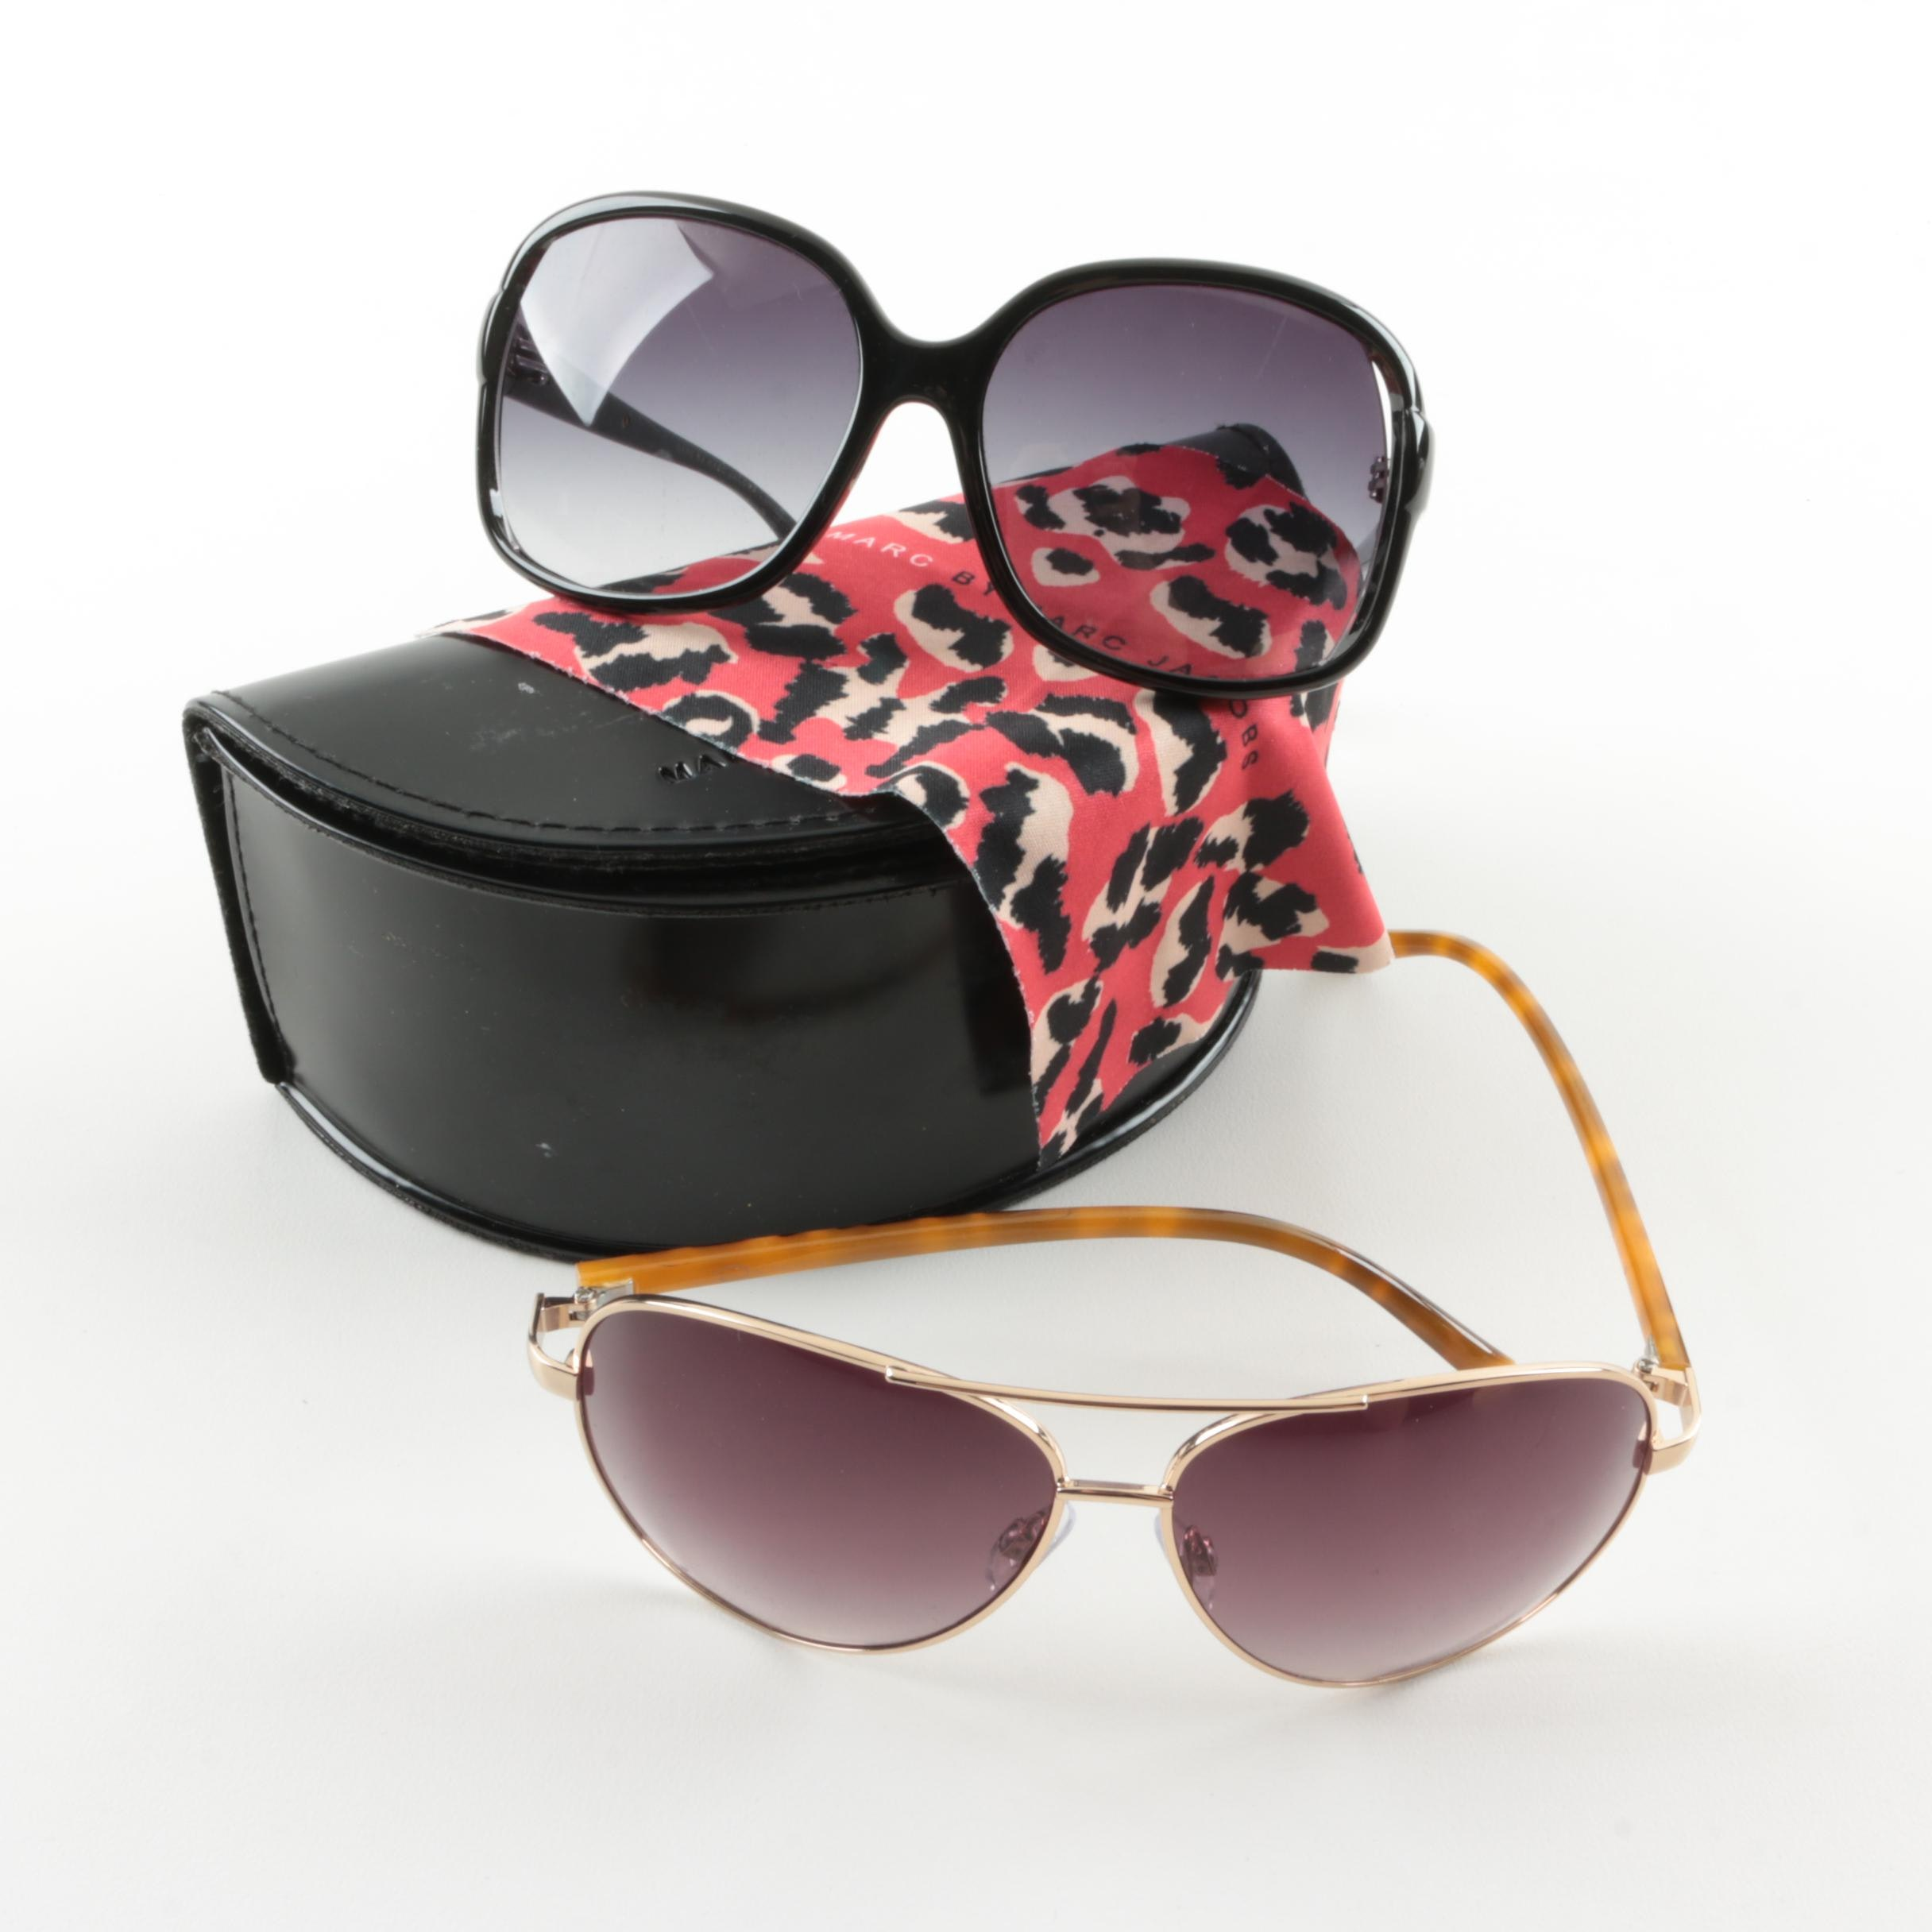 Marc by Marc Jacobs and O by Oscar De La Renta Sunglasses